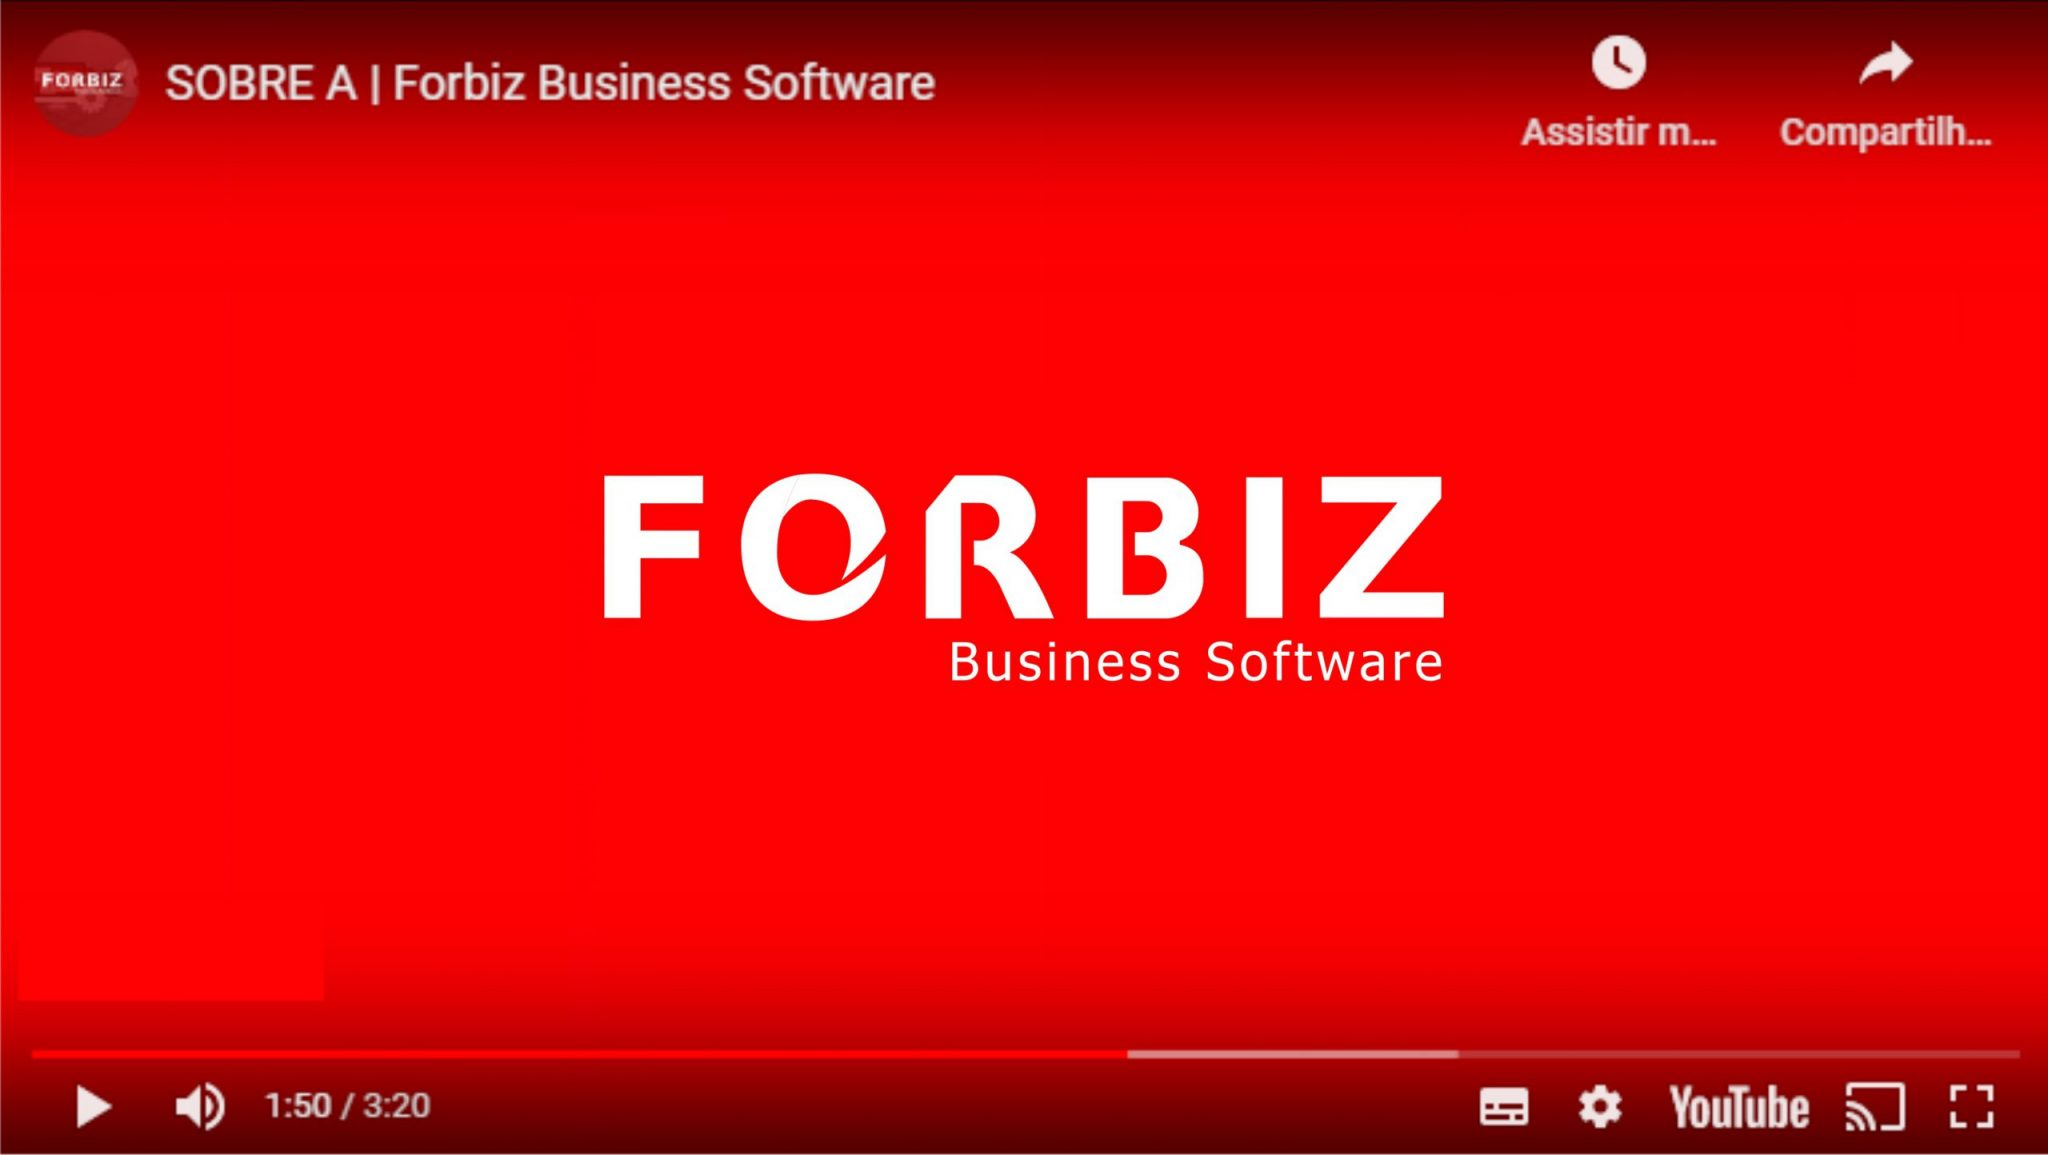 Sobre a Forbiz Business Software